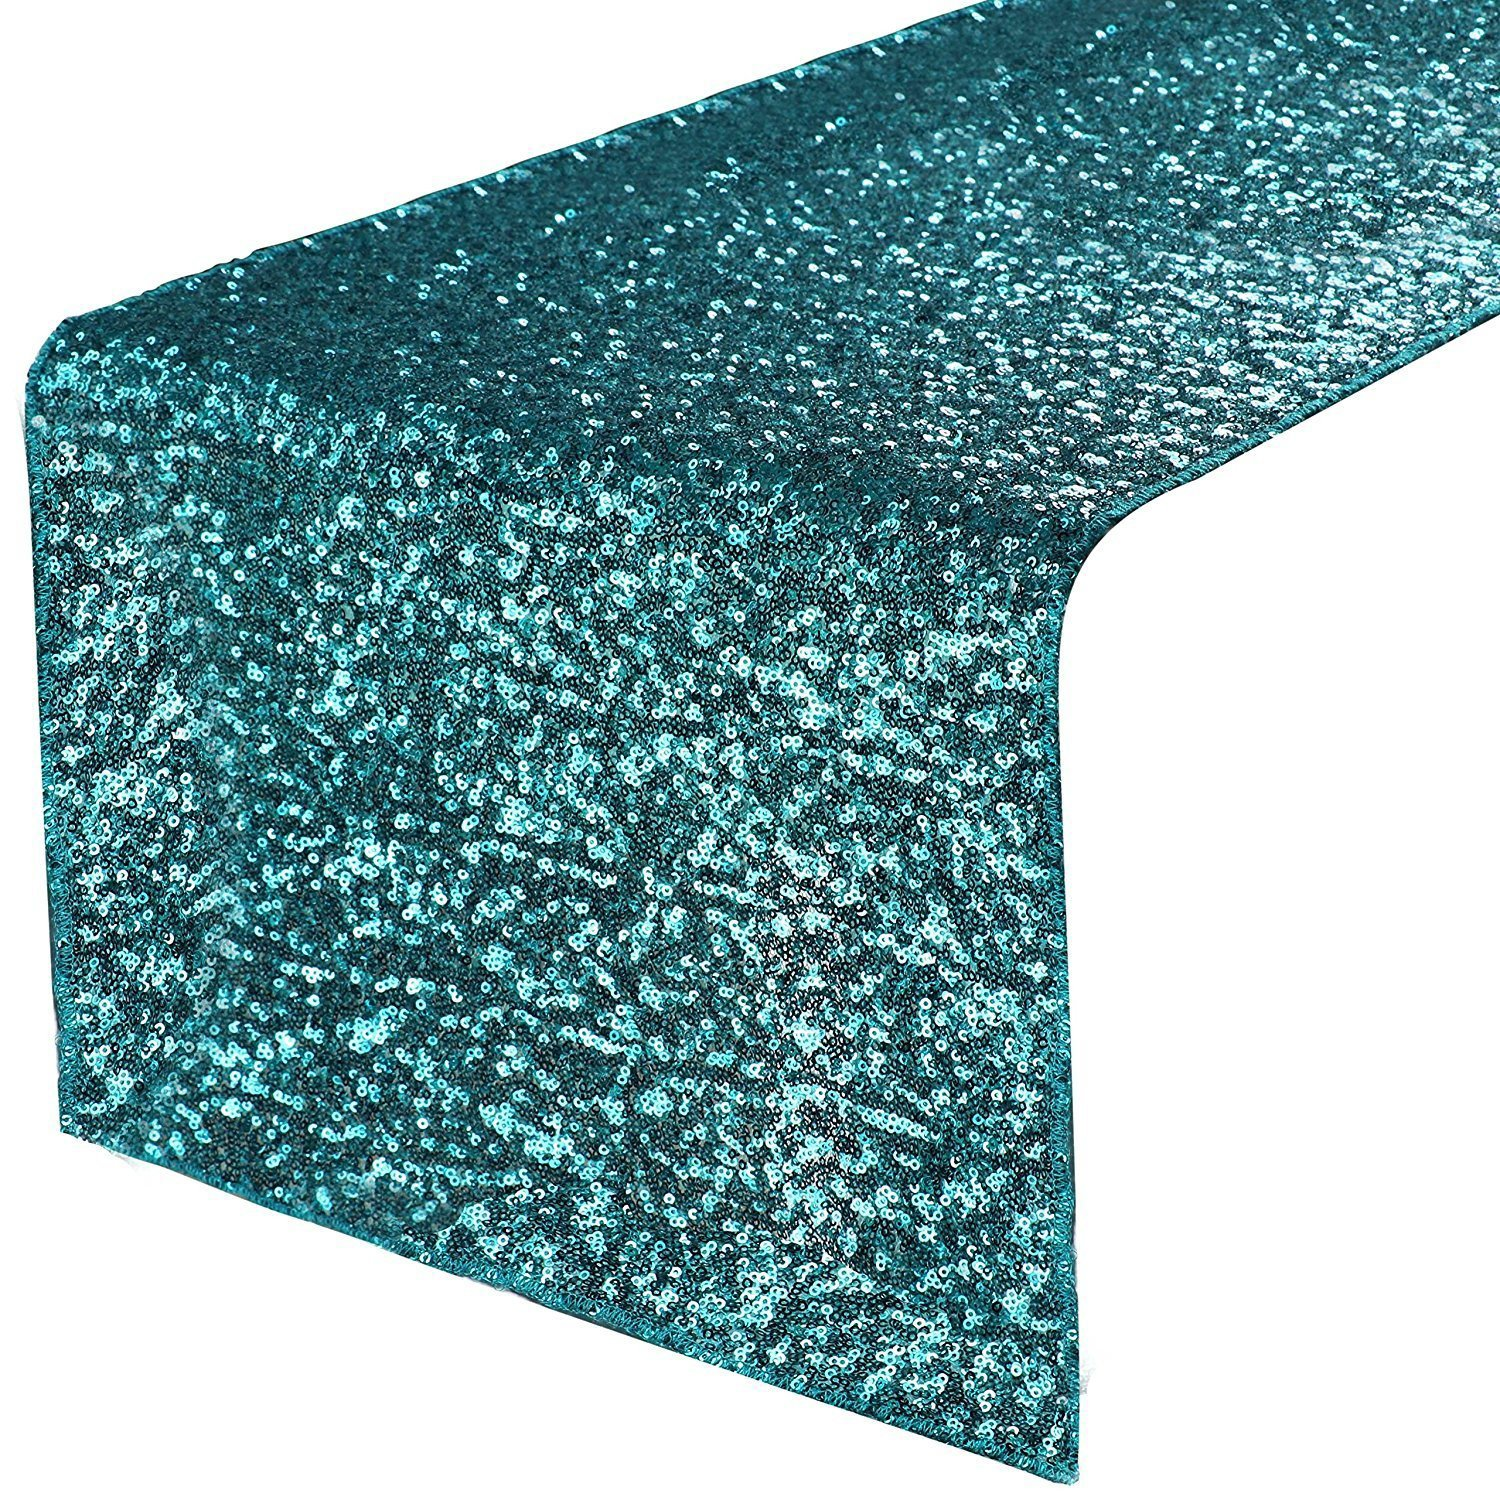 PONY DANCE Glitzy Table Runner - Premium Quality Sparking Sequins Table Runners for Events Christmas/Party/Birthday/Wedding/Banquet Decoration, 14'' x 108'', Teal